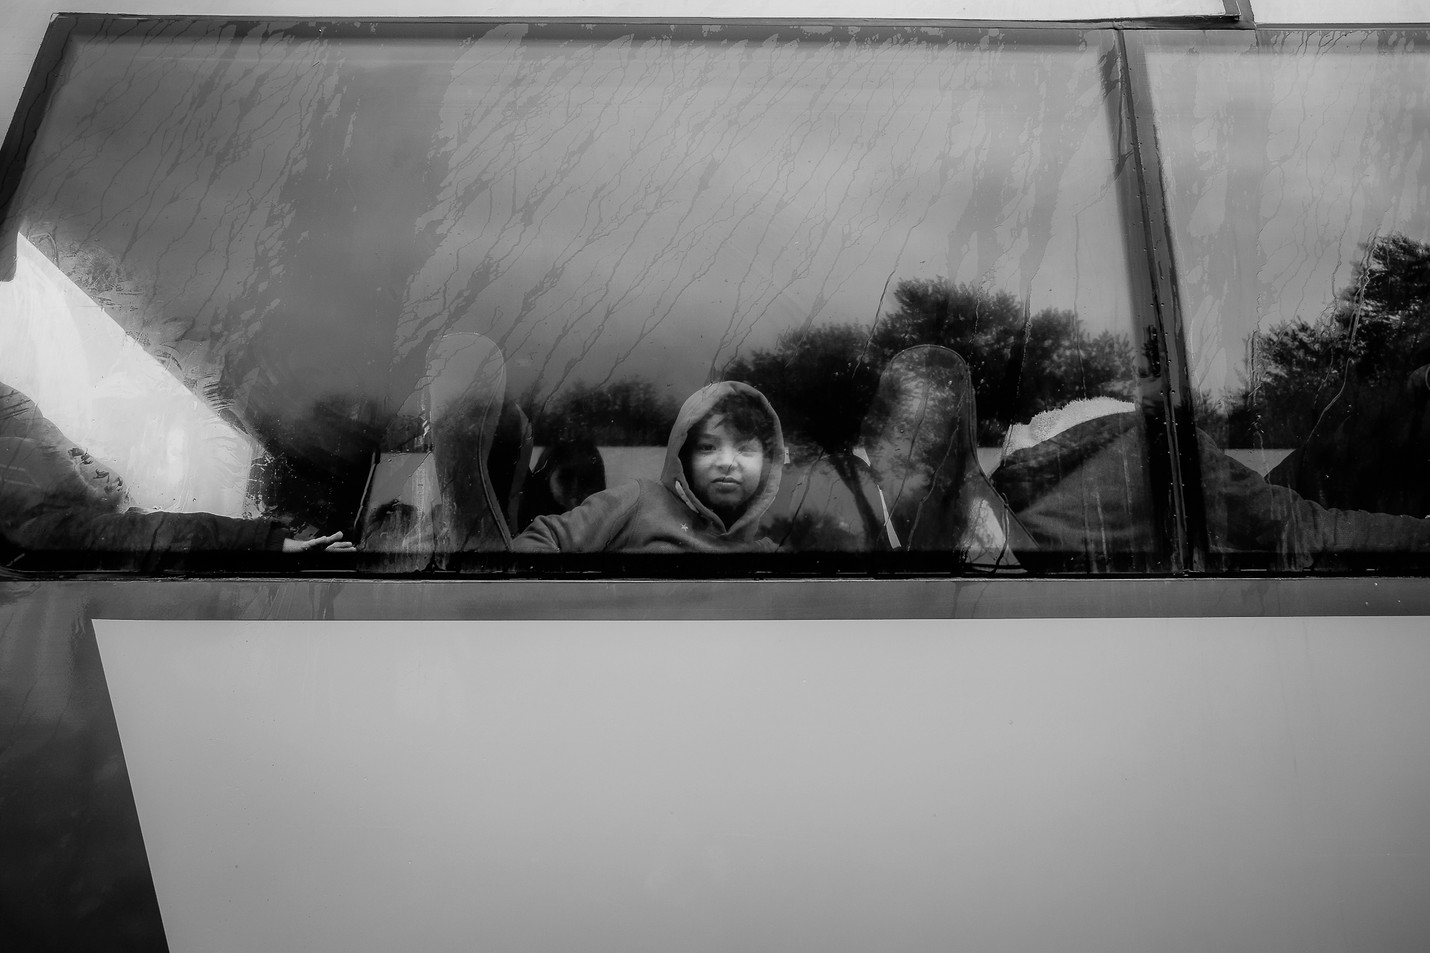 Children from Moria in a bus taking them to school.